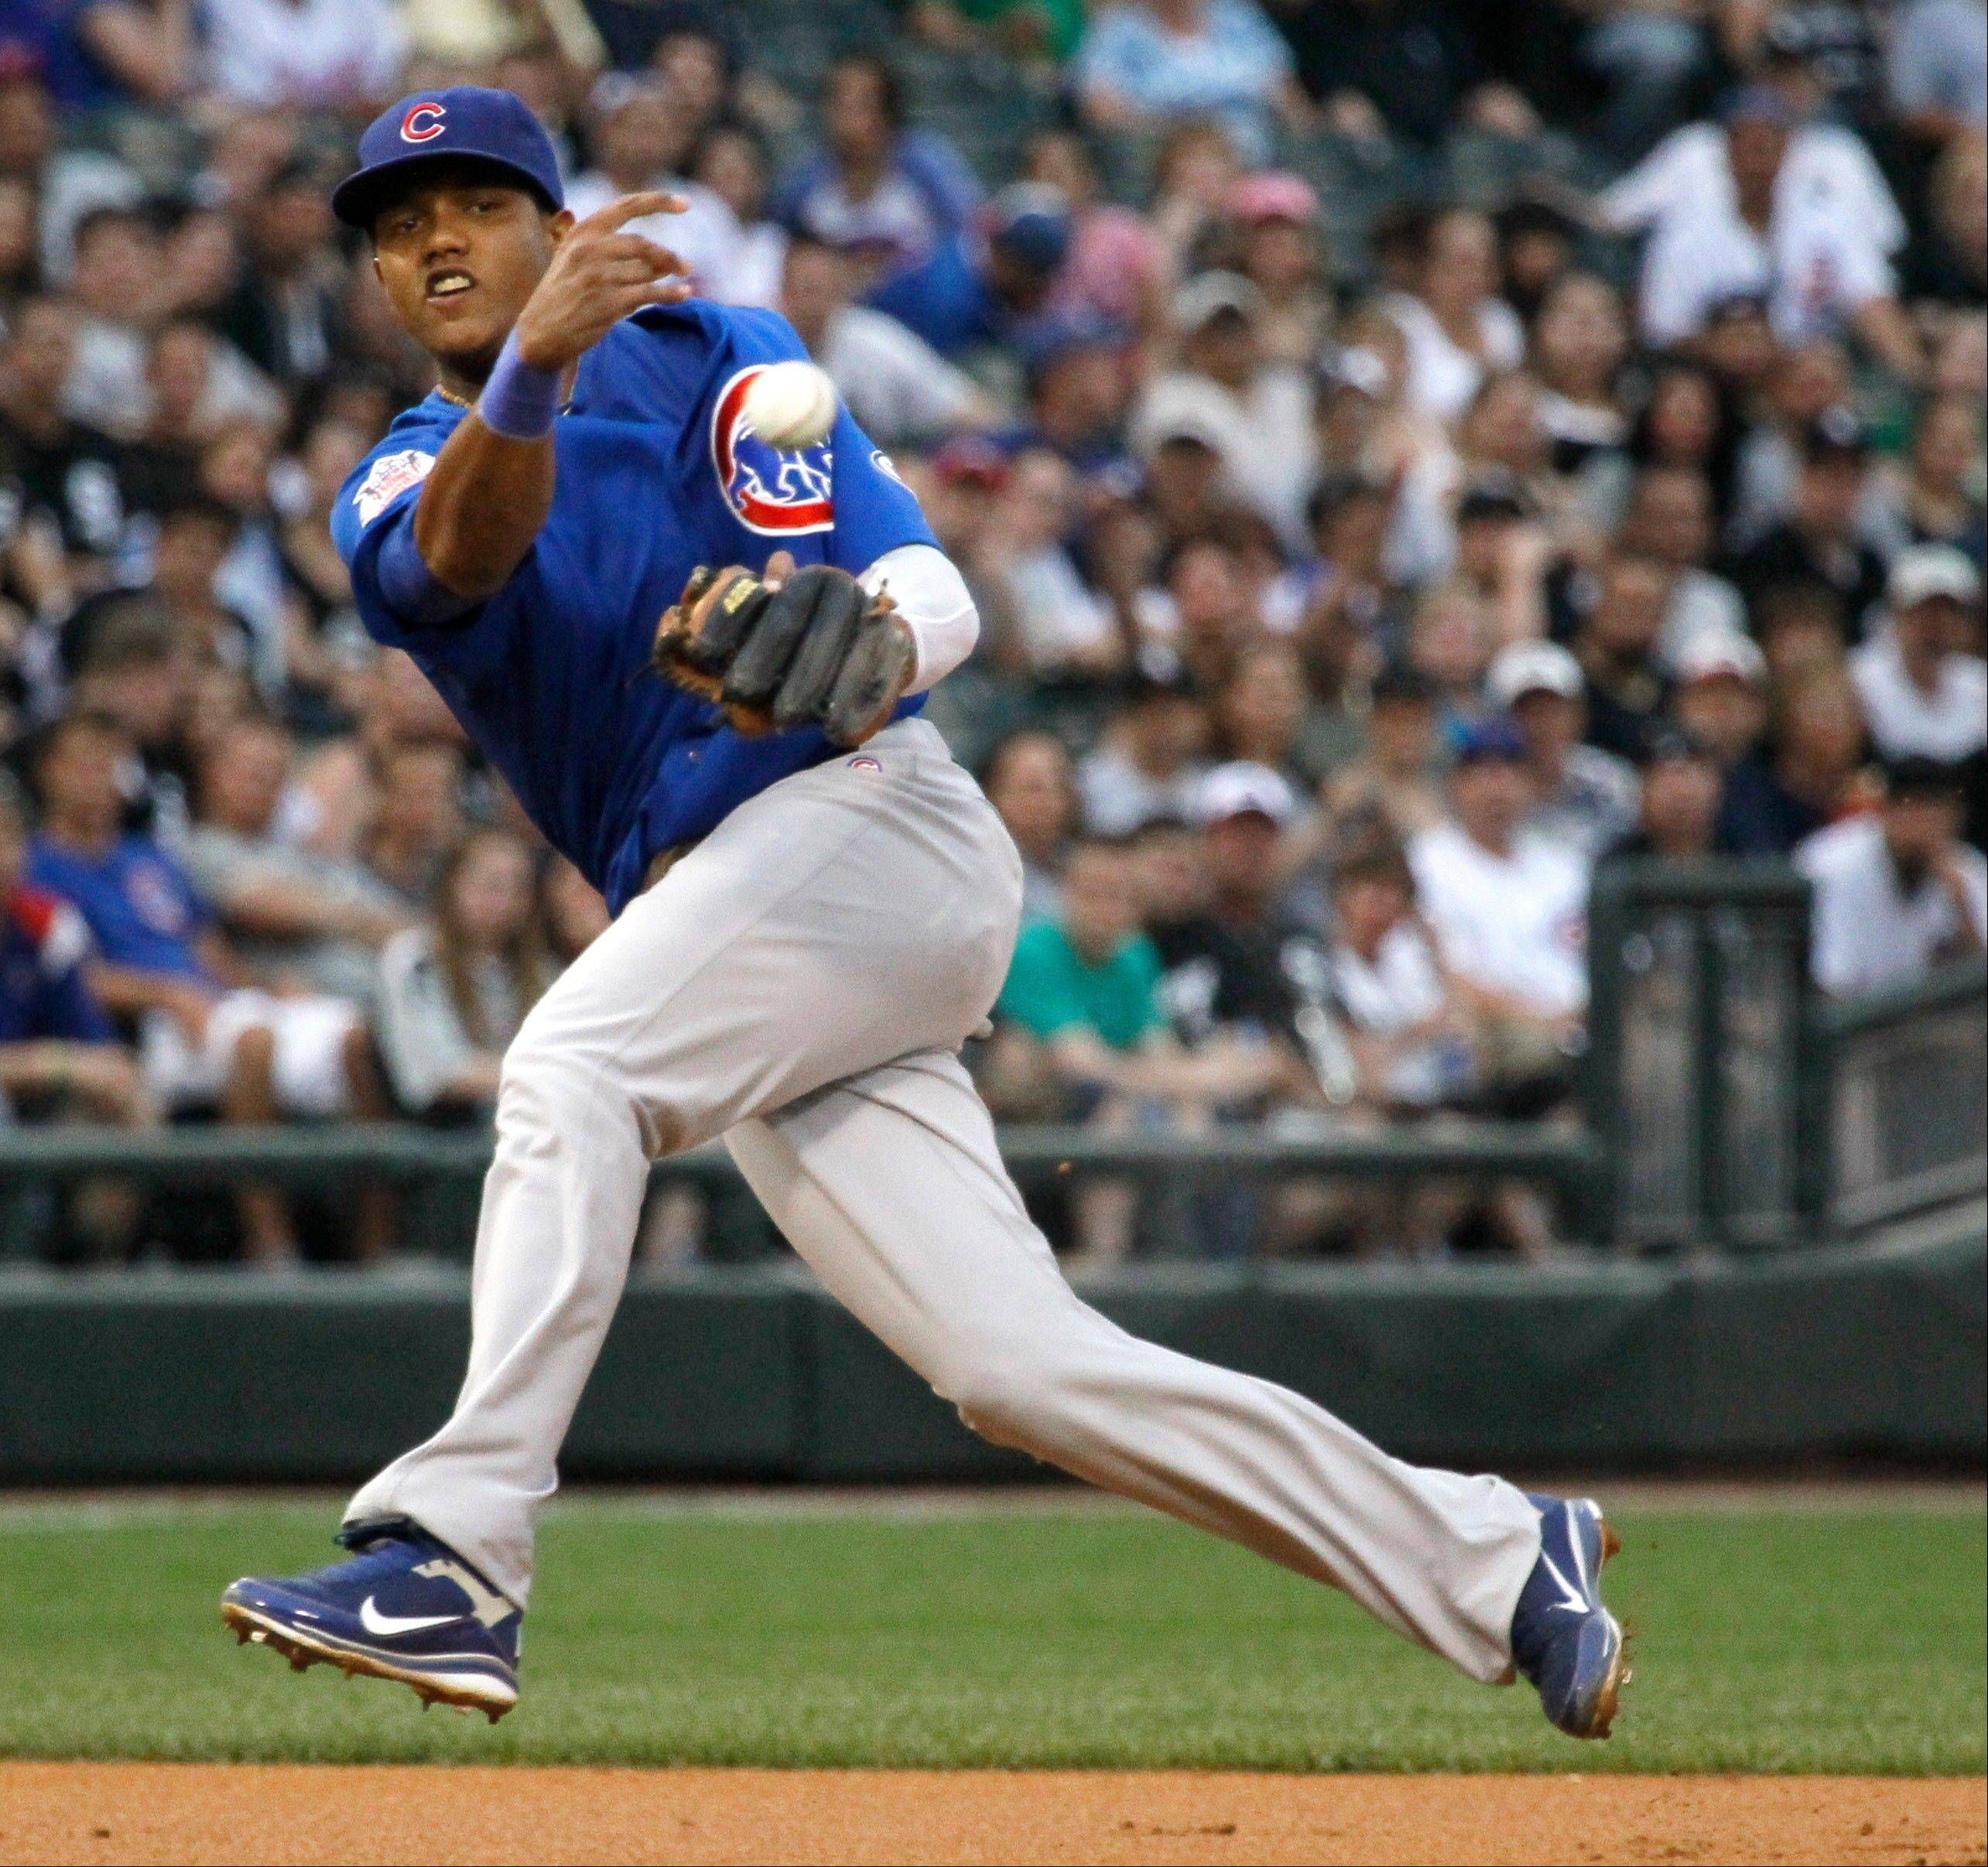 Cubs contending -- or is Guillen pretending?